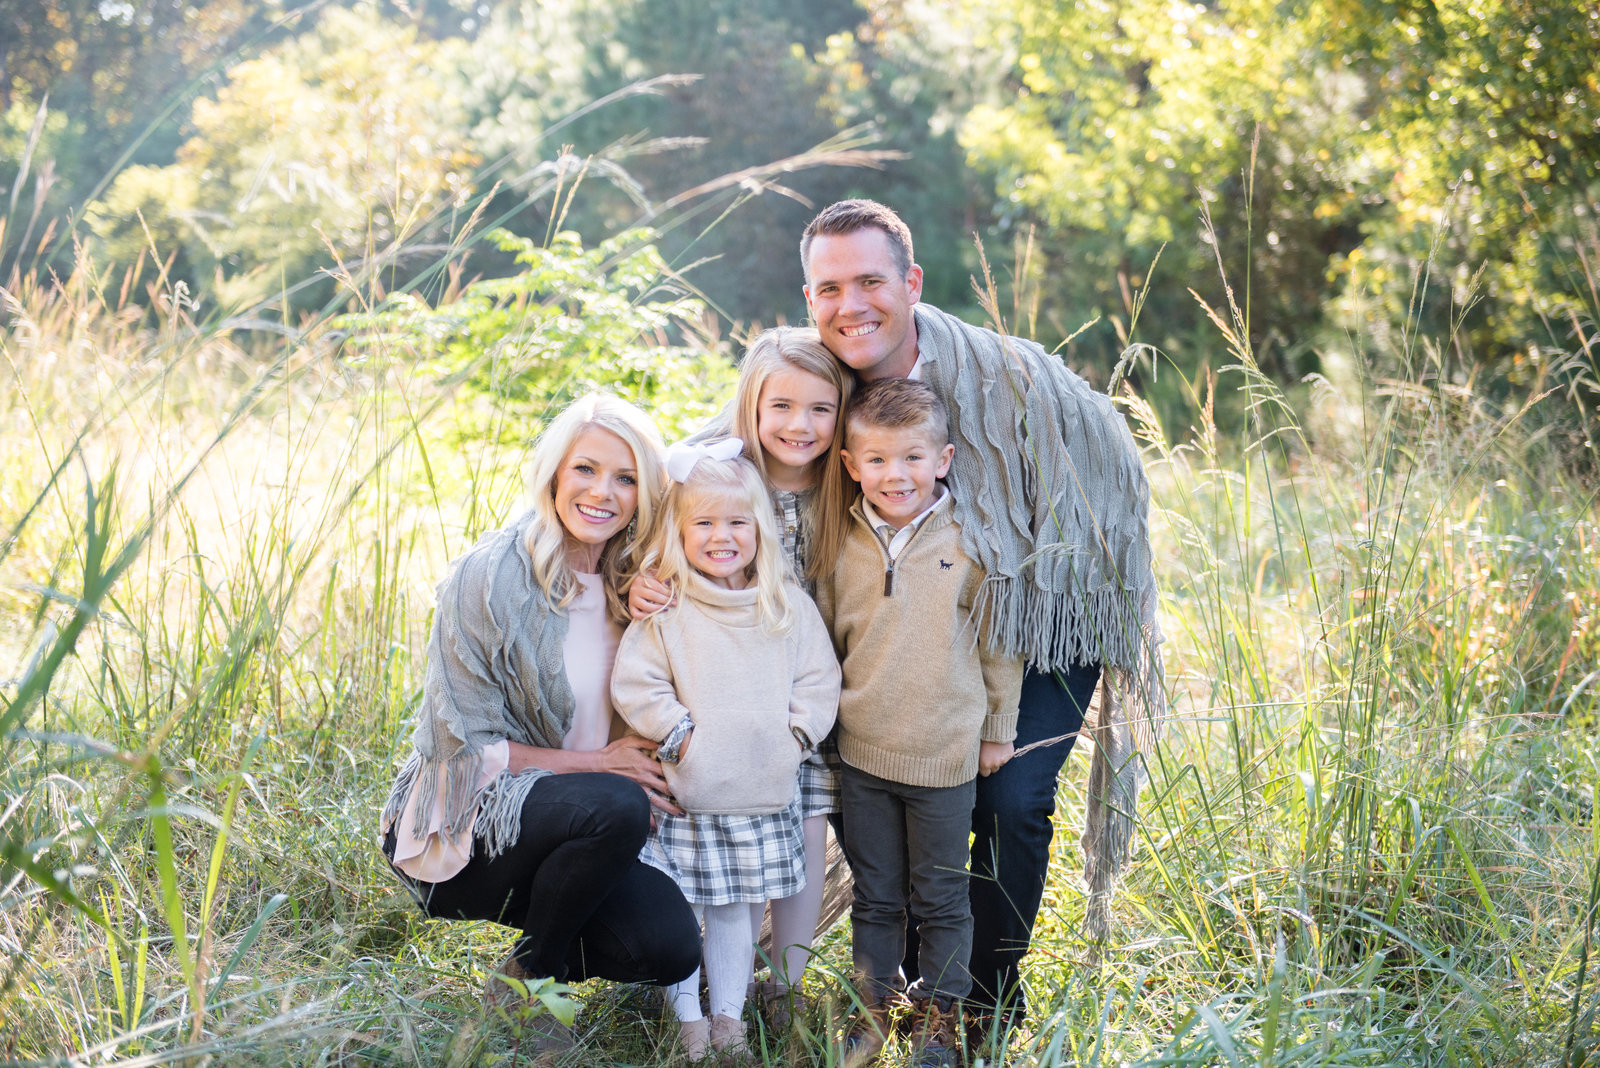 AveryFamilyFallMiniSession(November3,2018)54